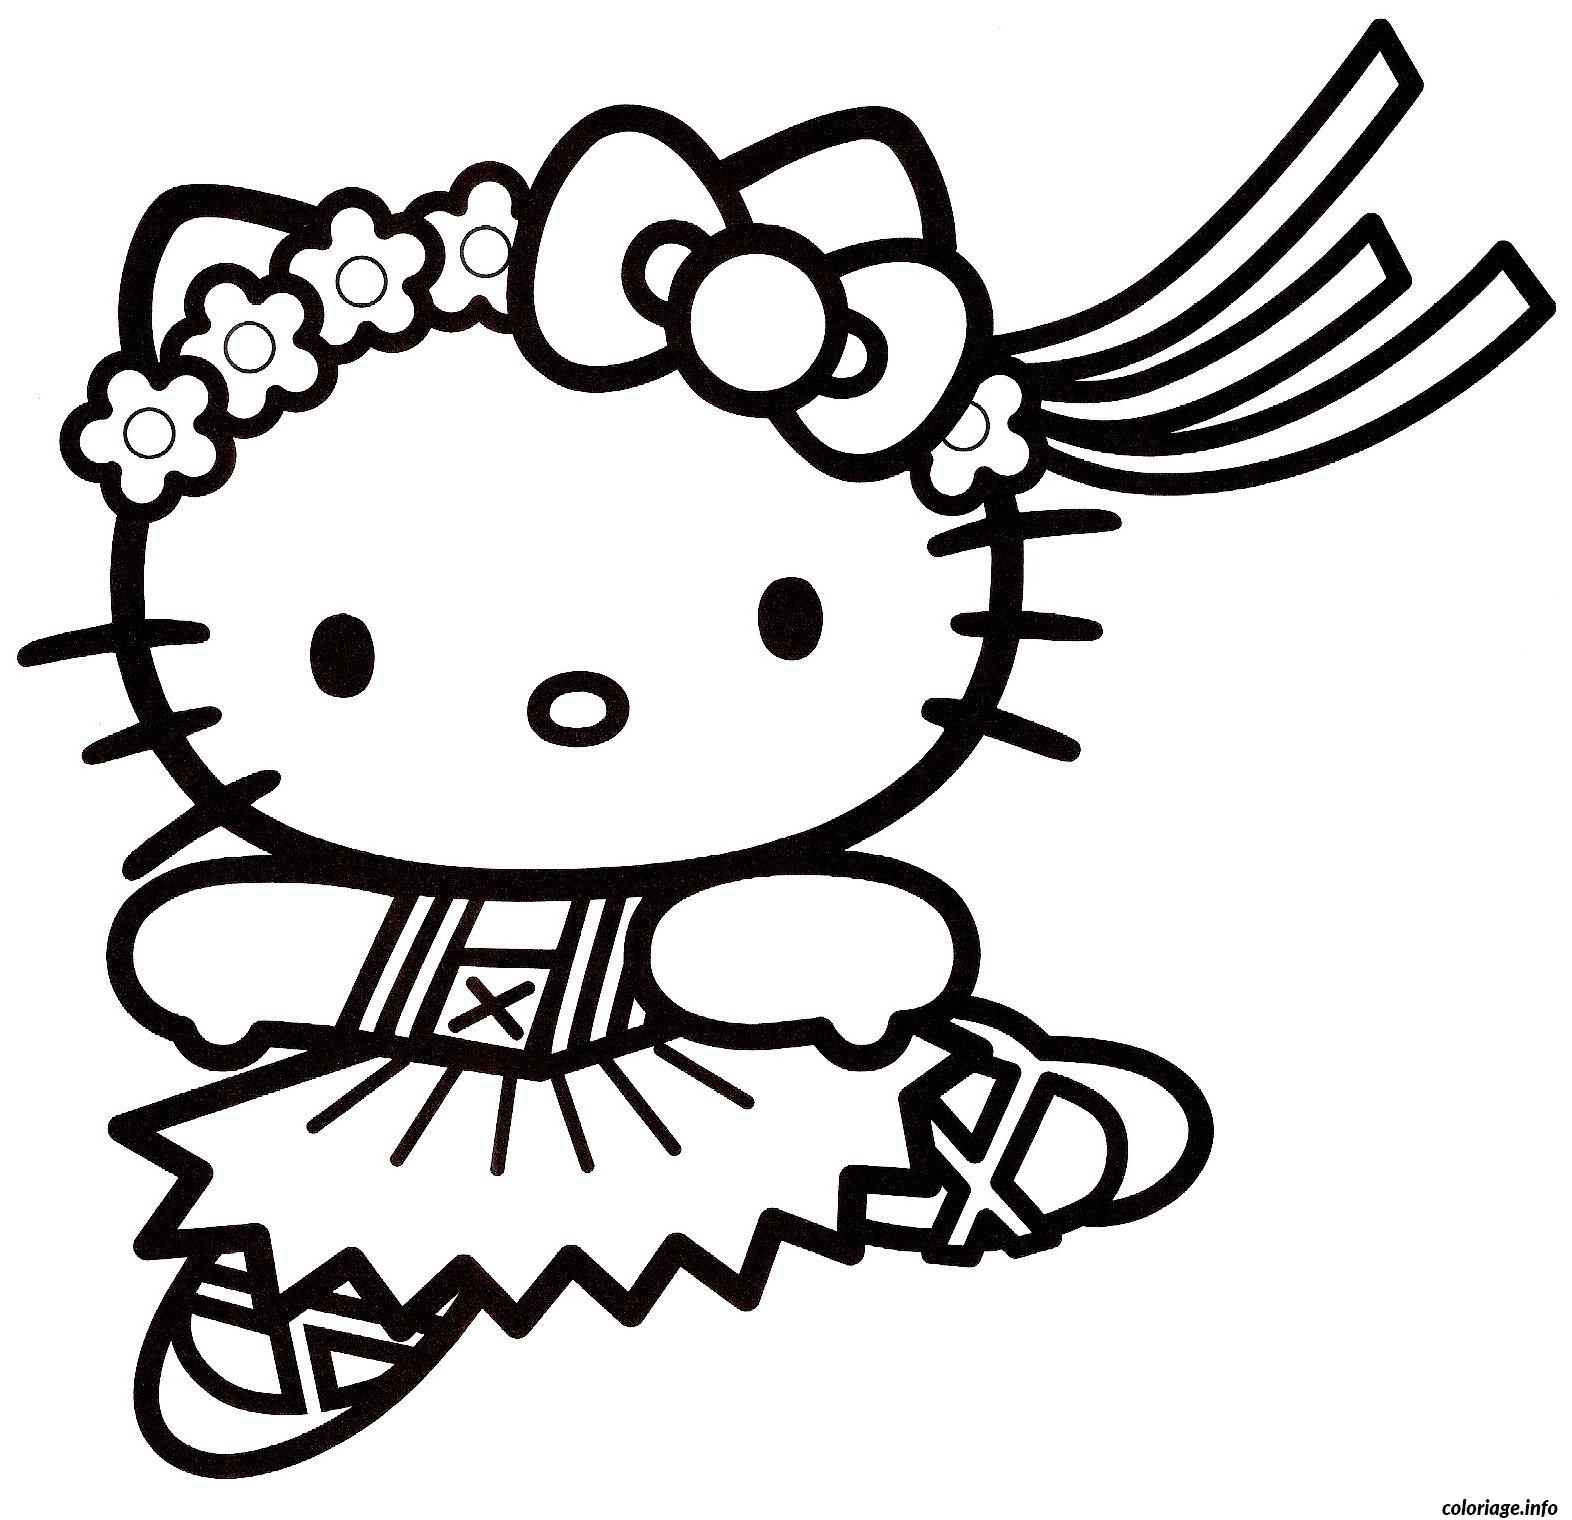 Coloriage dessin hello kitty 3 dessin - Coloriage hello kitty gratuit ...